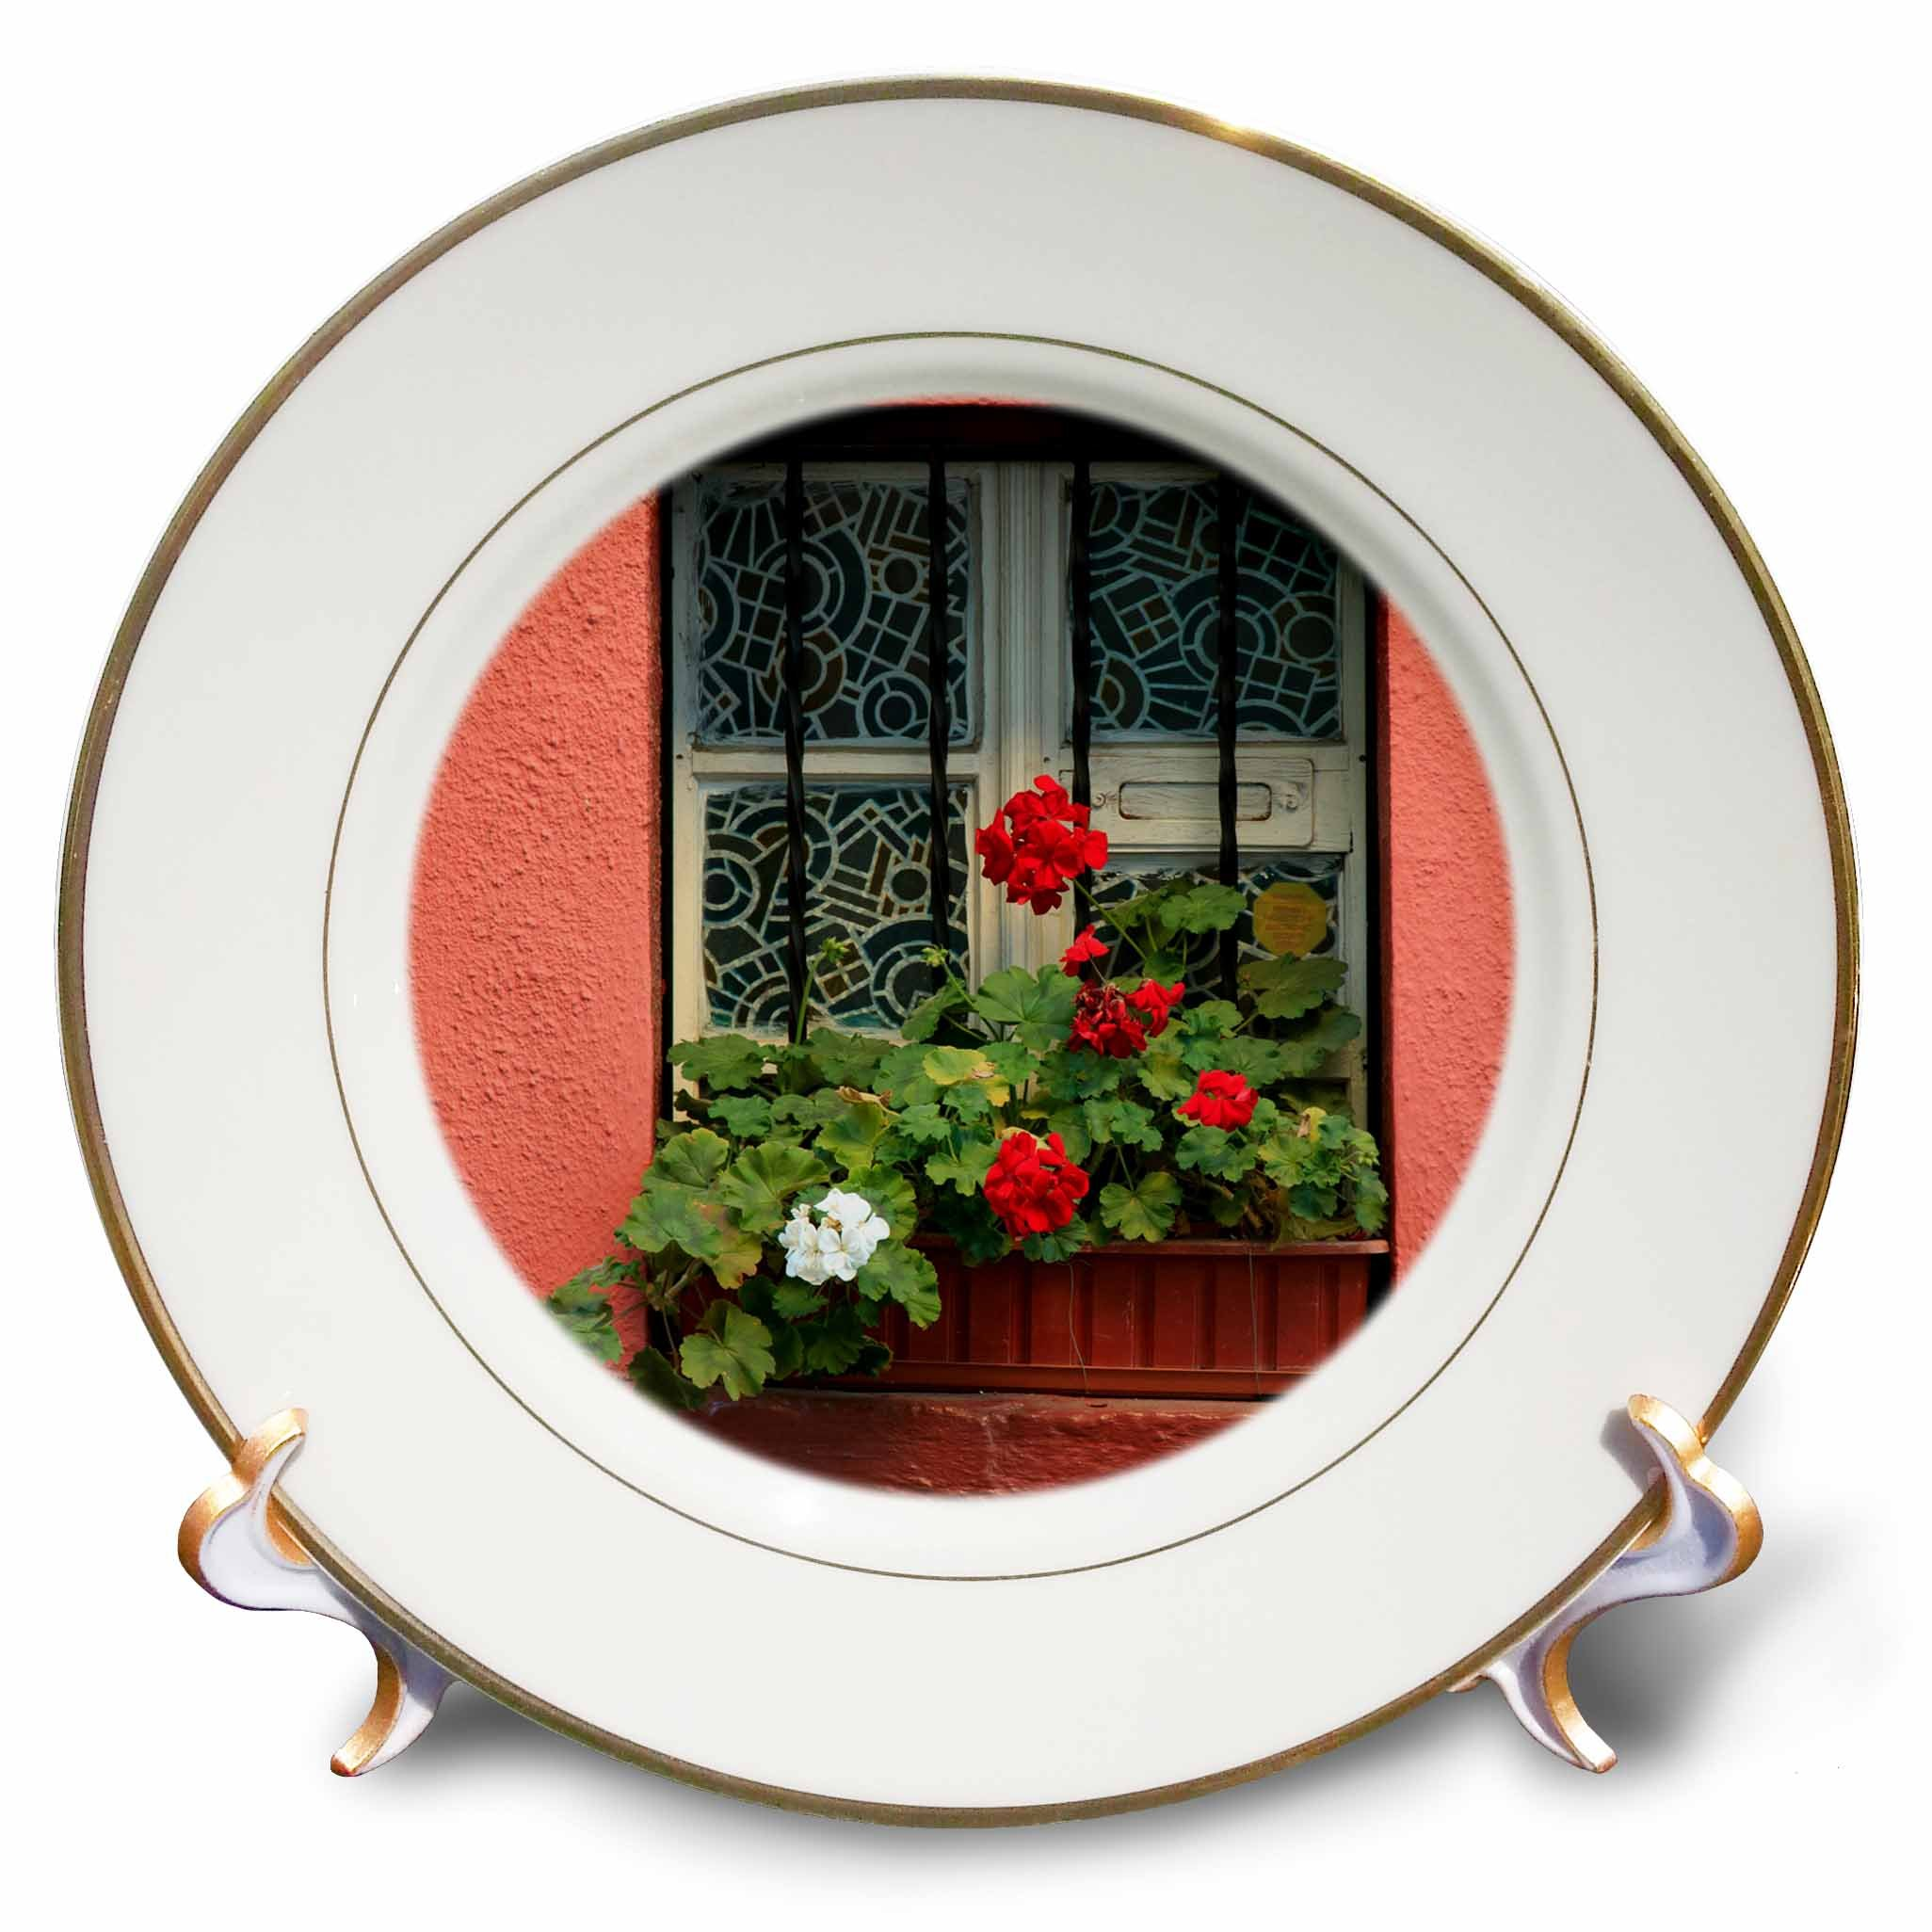 3dRose Danita Delimont - Flowers - Romania, Sighisoara, residential window in old town. Flowers in window - 8 inch Porcelain Plate (cp_277872_1) by 3dRose (Image #1)